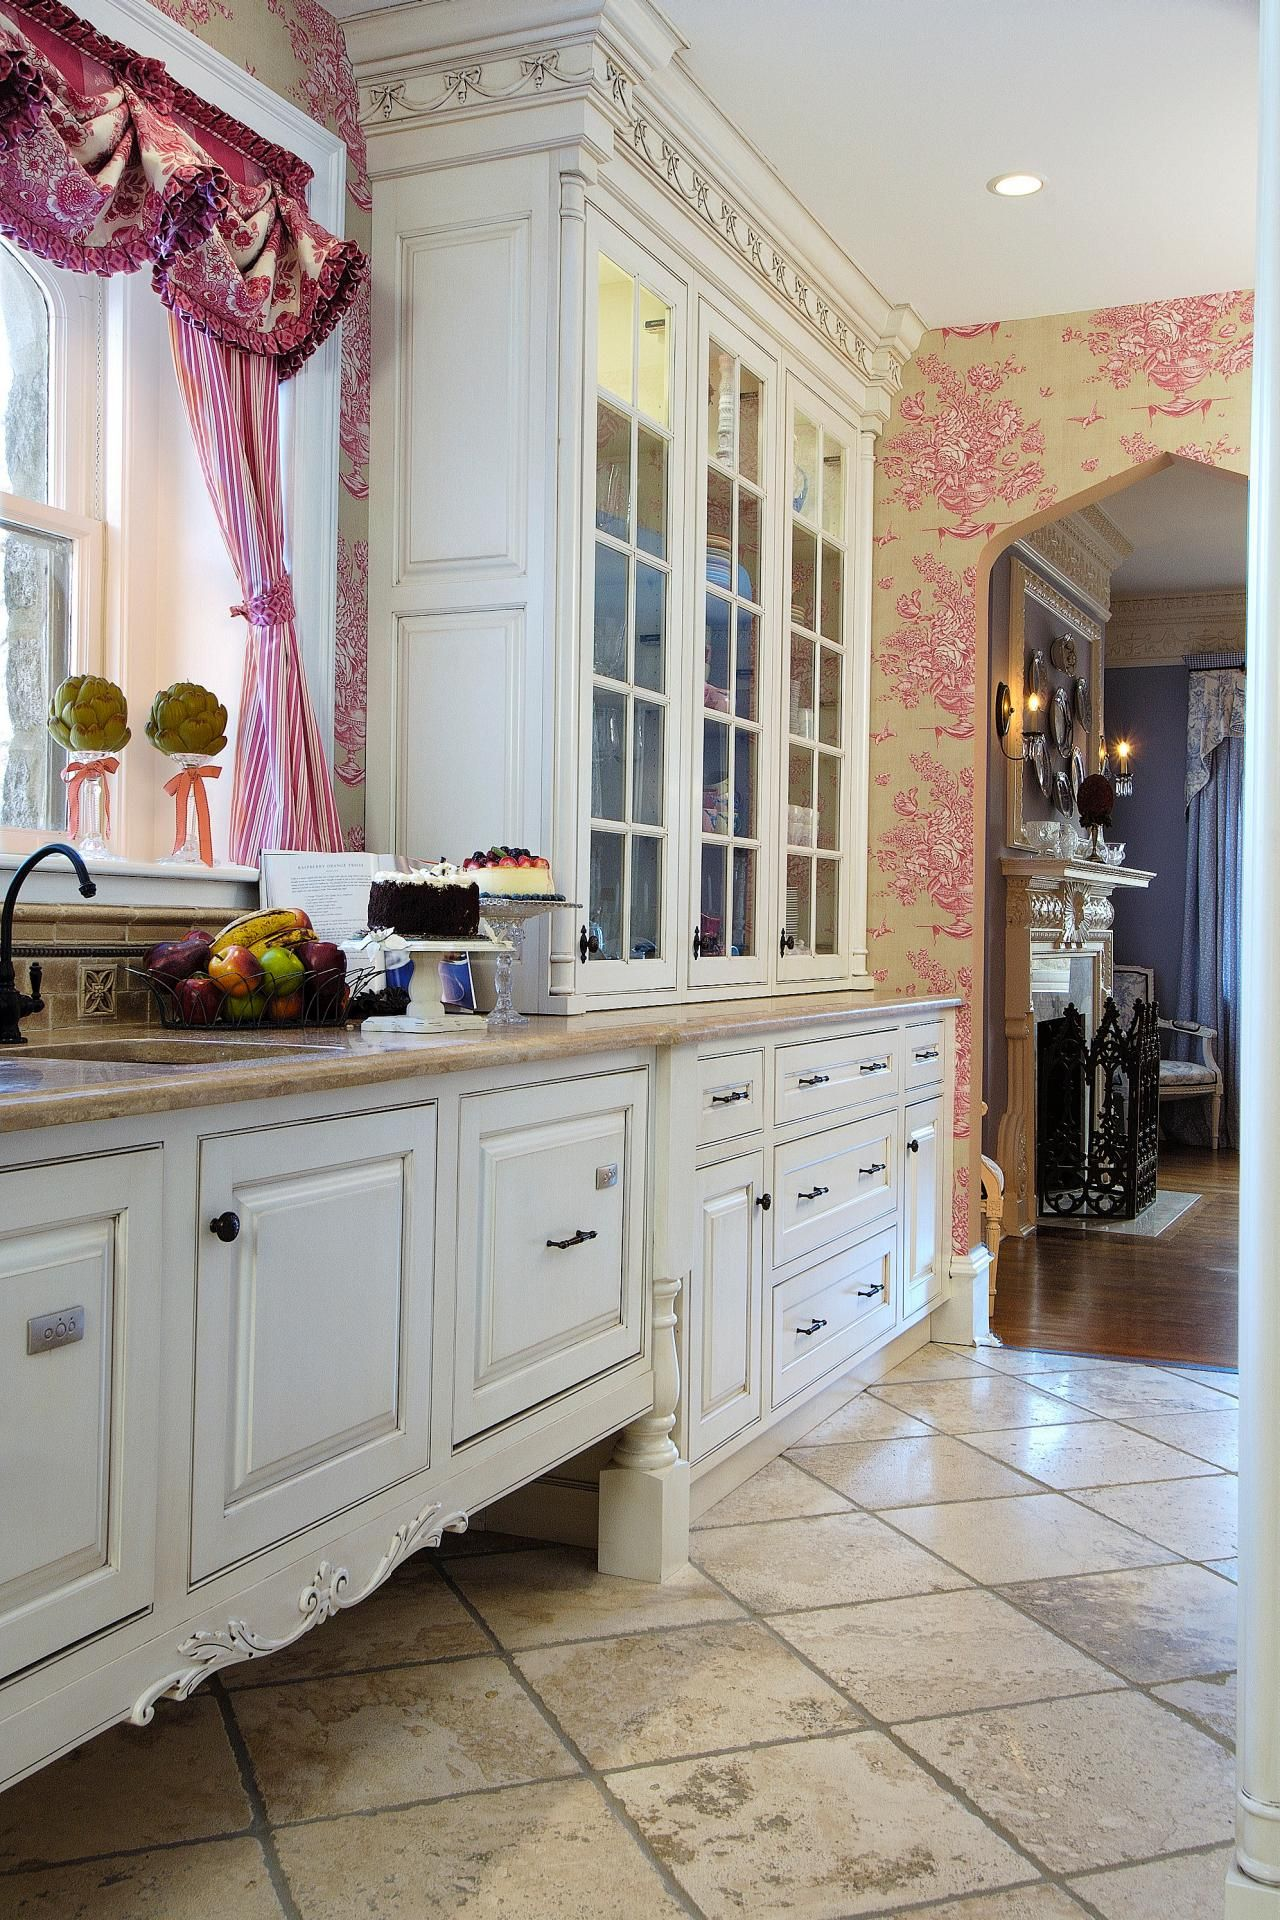 just the floor dream home kitchen cabinet styles romantic rh pinterest com